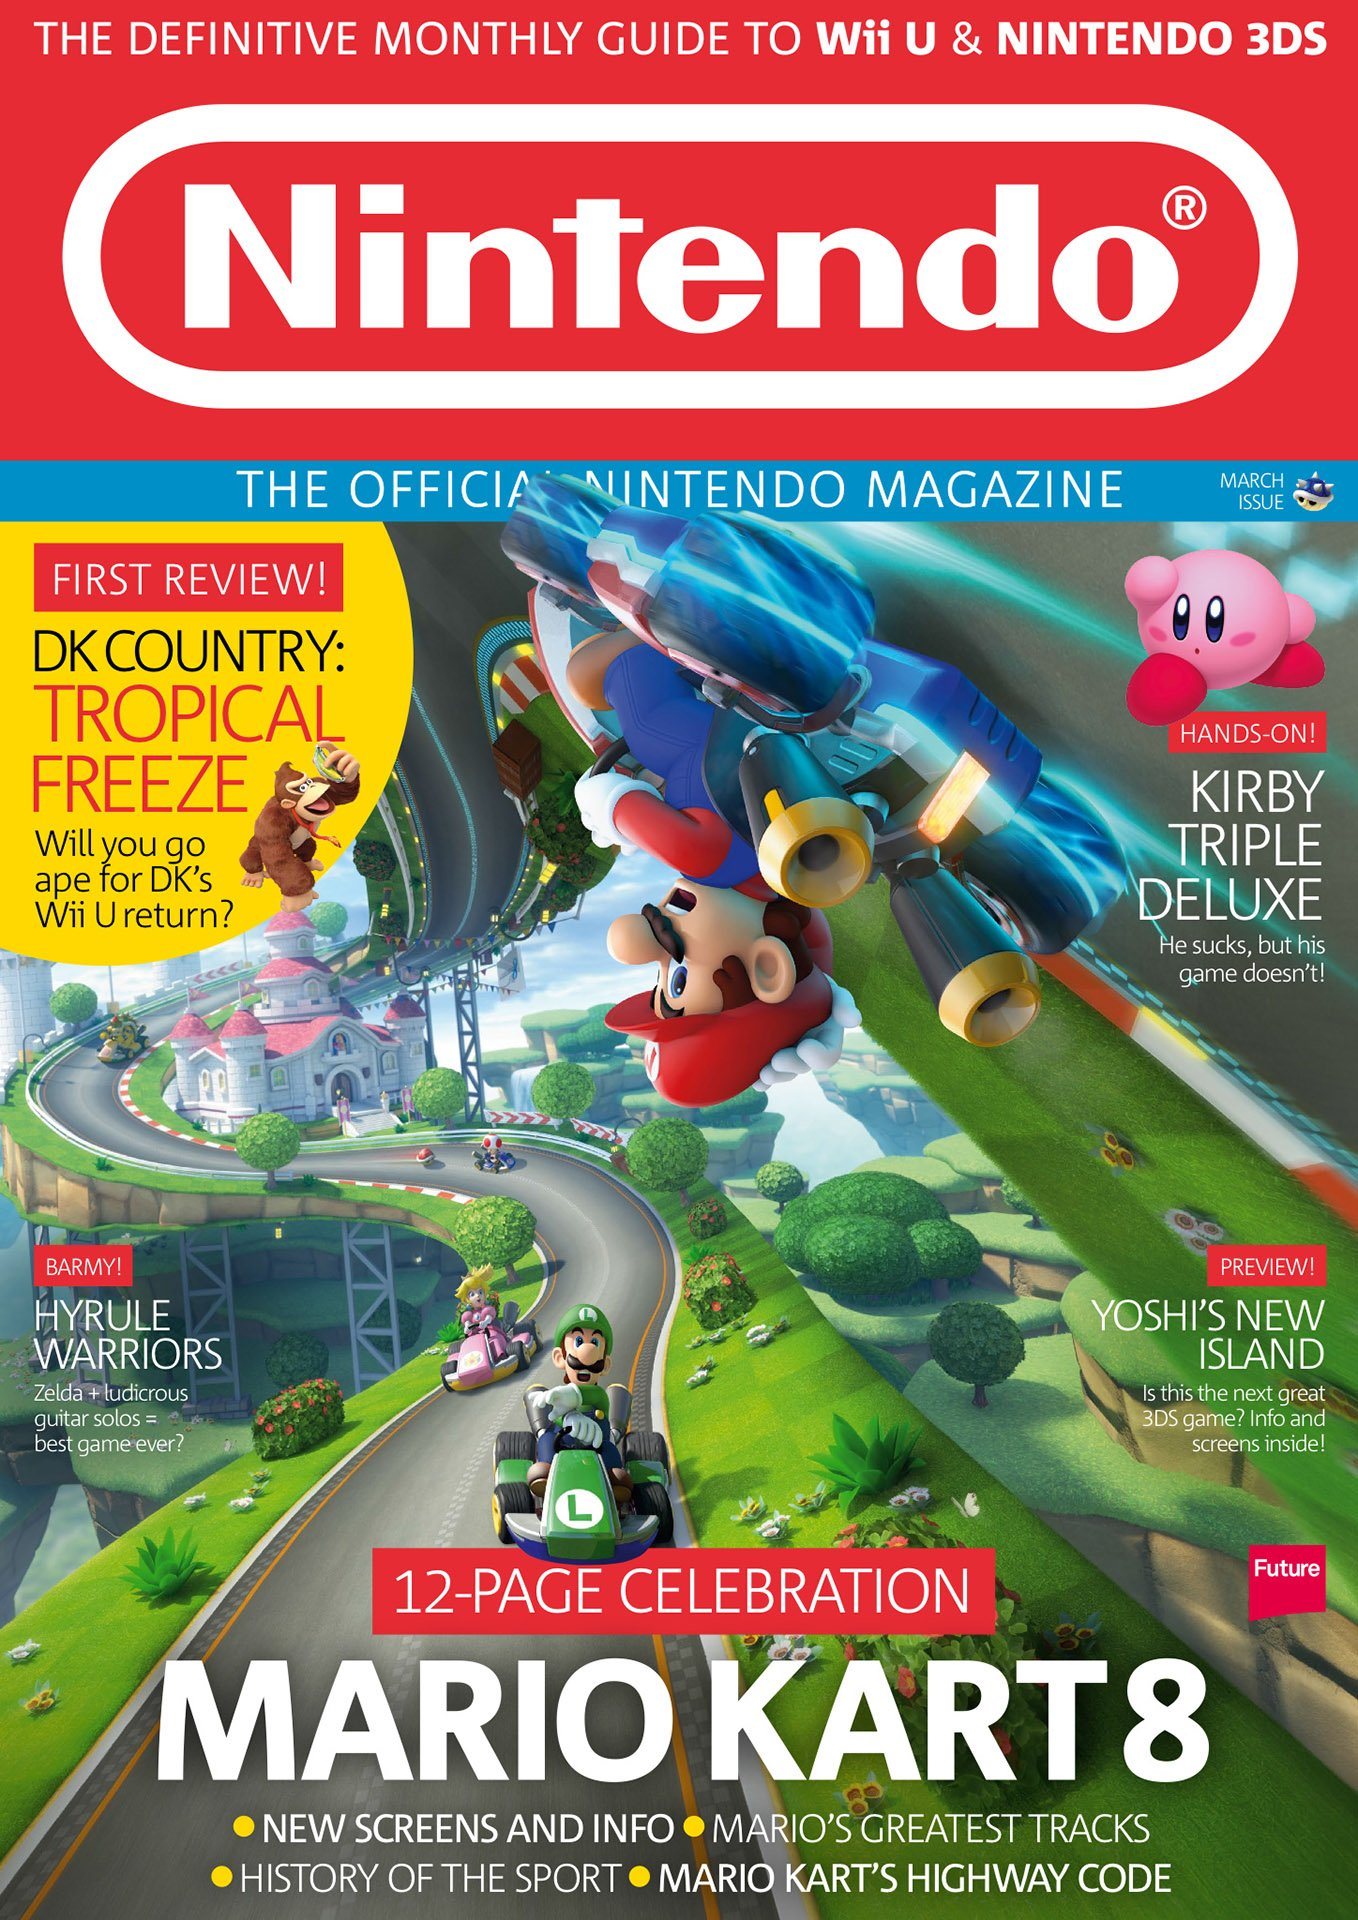 Official Nintendo Magazine 105 (March 2014)